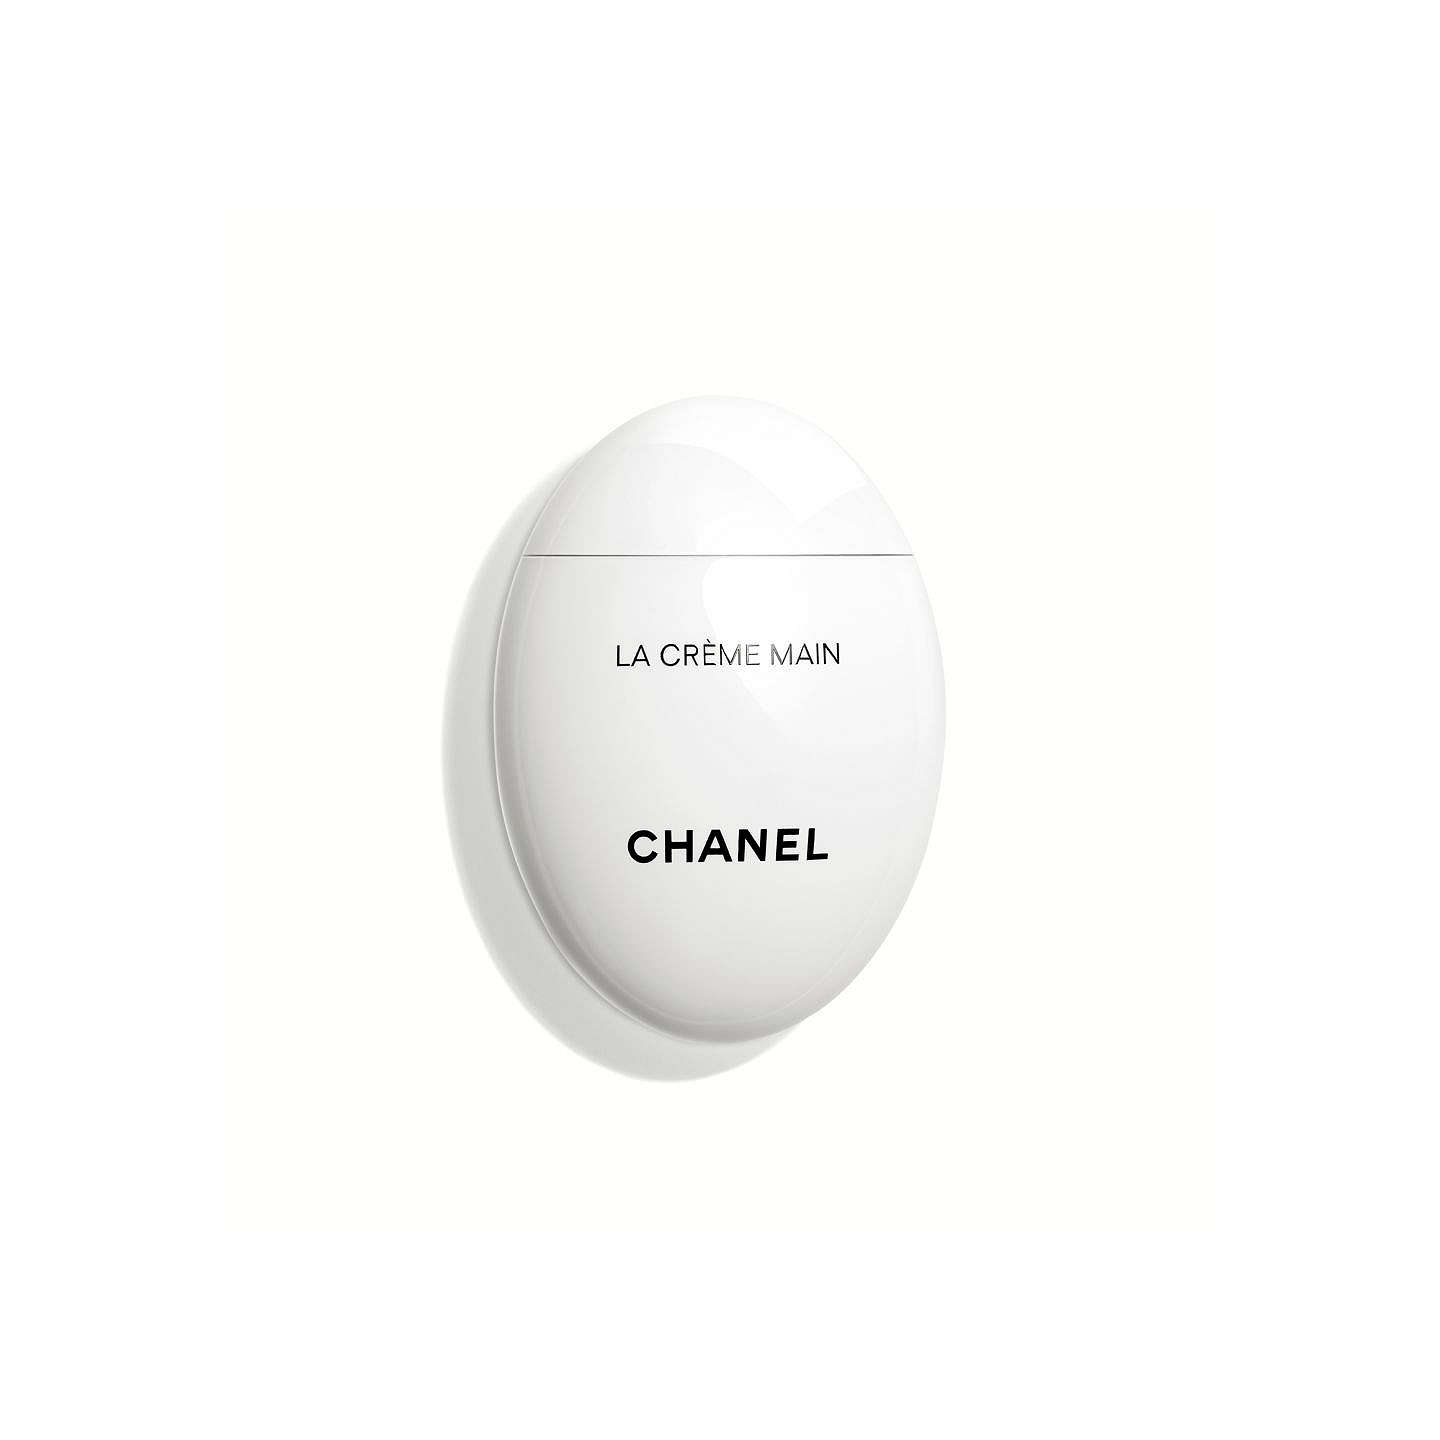 BuyCHANEL LA CRÈME MAIN Smooth-Soften-Brighten Bottle Online at johnlewis.com